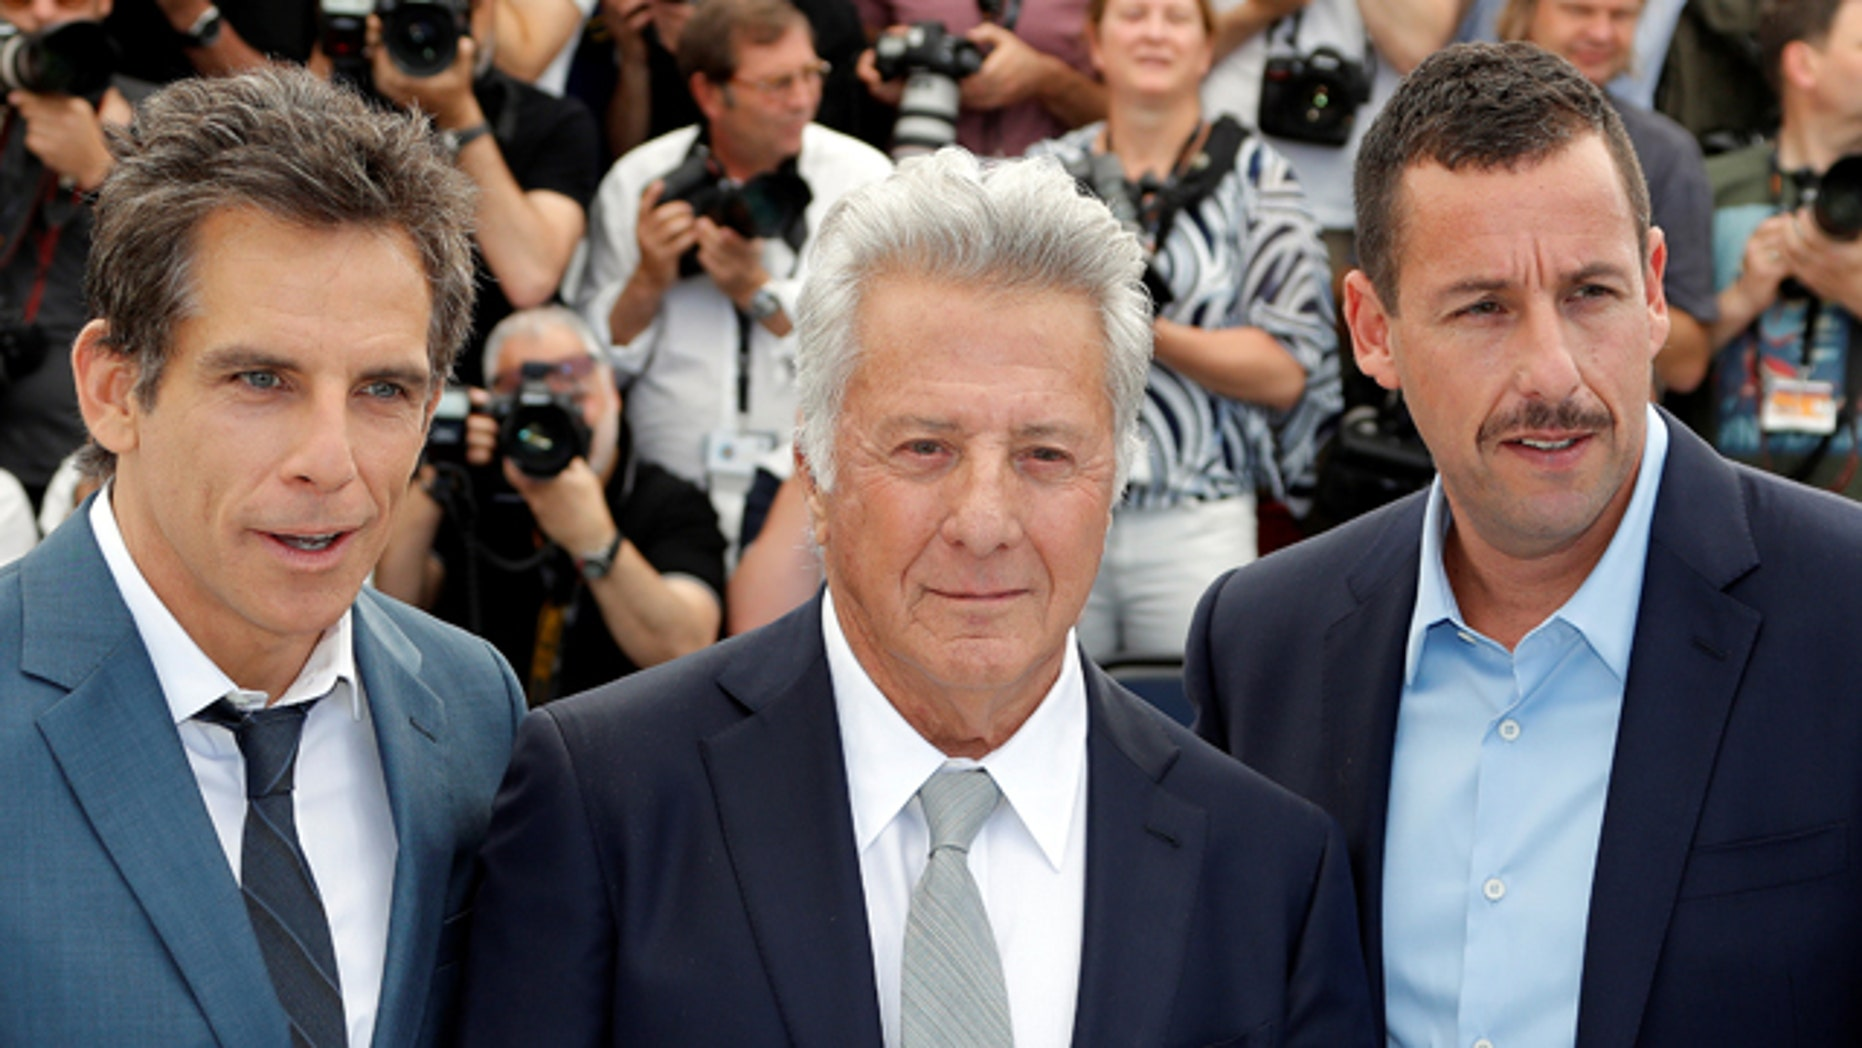 """Ben Stiller, Dustin Hoffman and Adam Sandler at the photocall for """"The Meyerowitz Stories"""" at the Cannes Film Festival."""